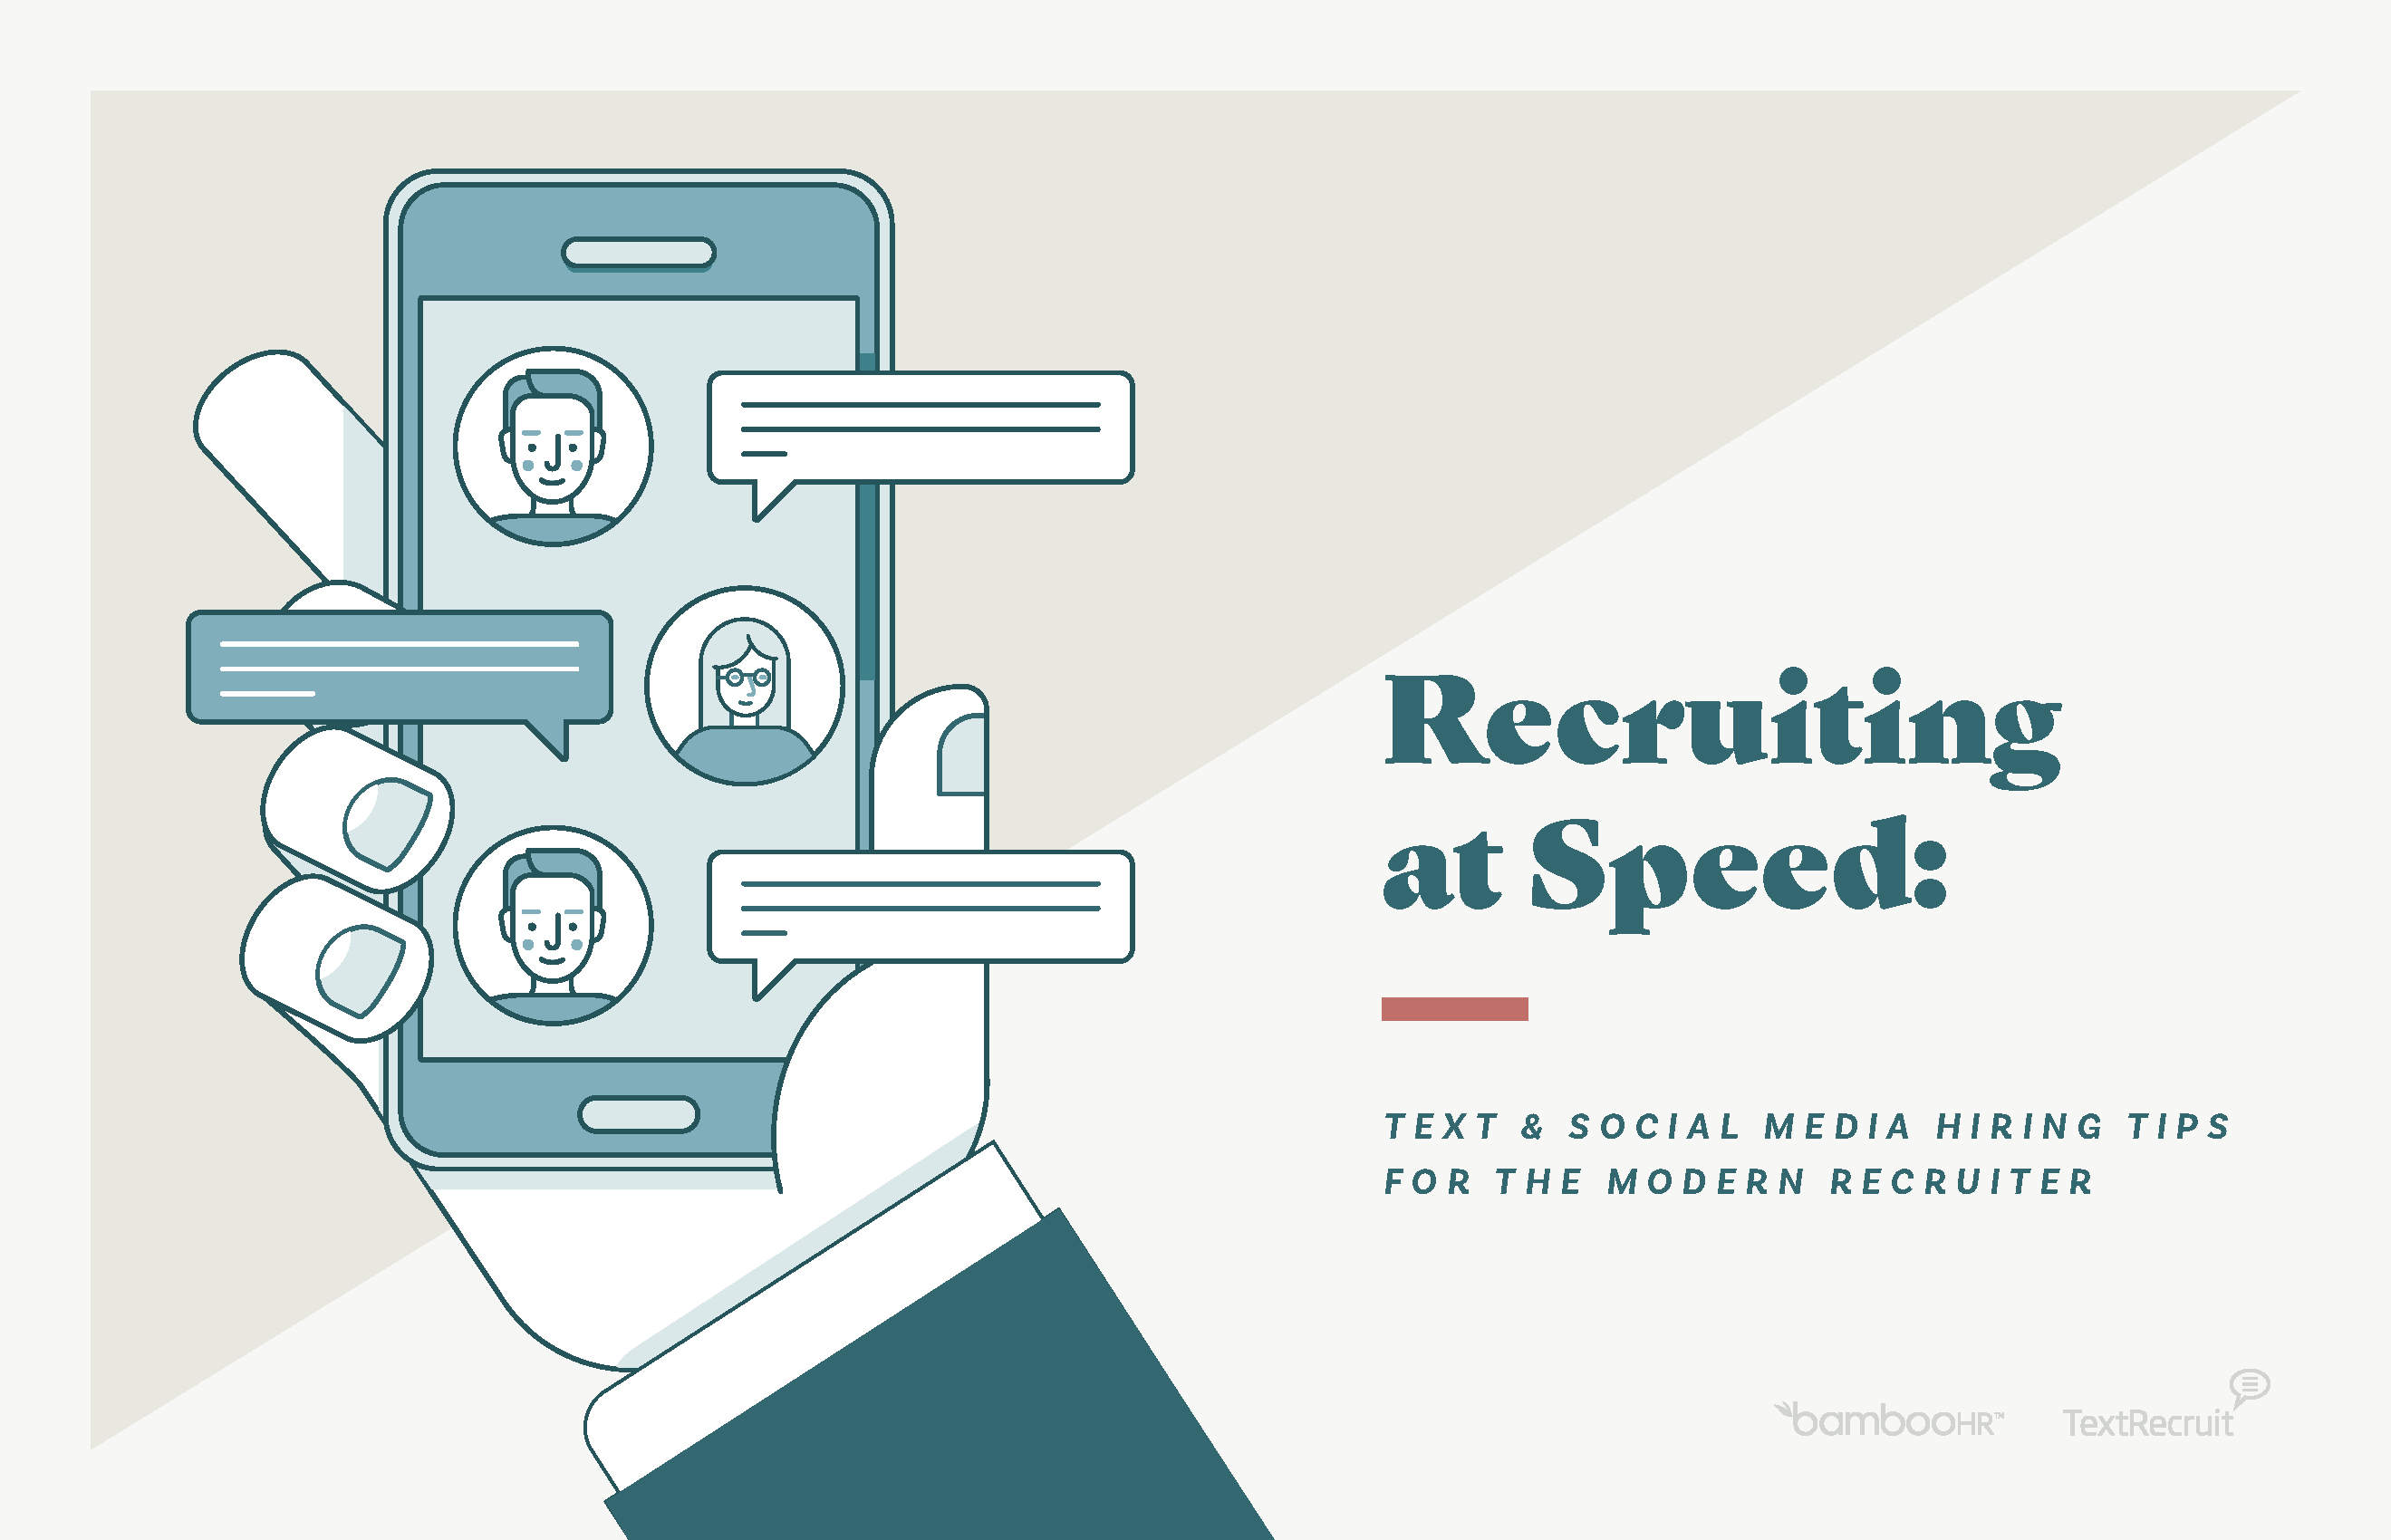 Recruiting at Speed: Text & Social Media Hiring Tips for the Modern Recruiter